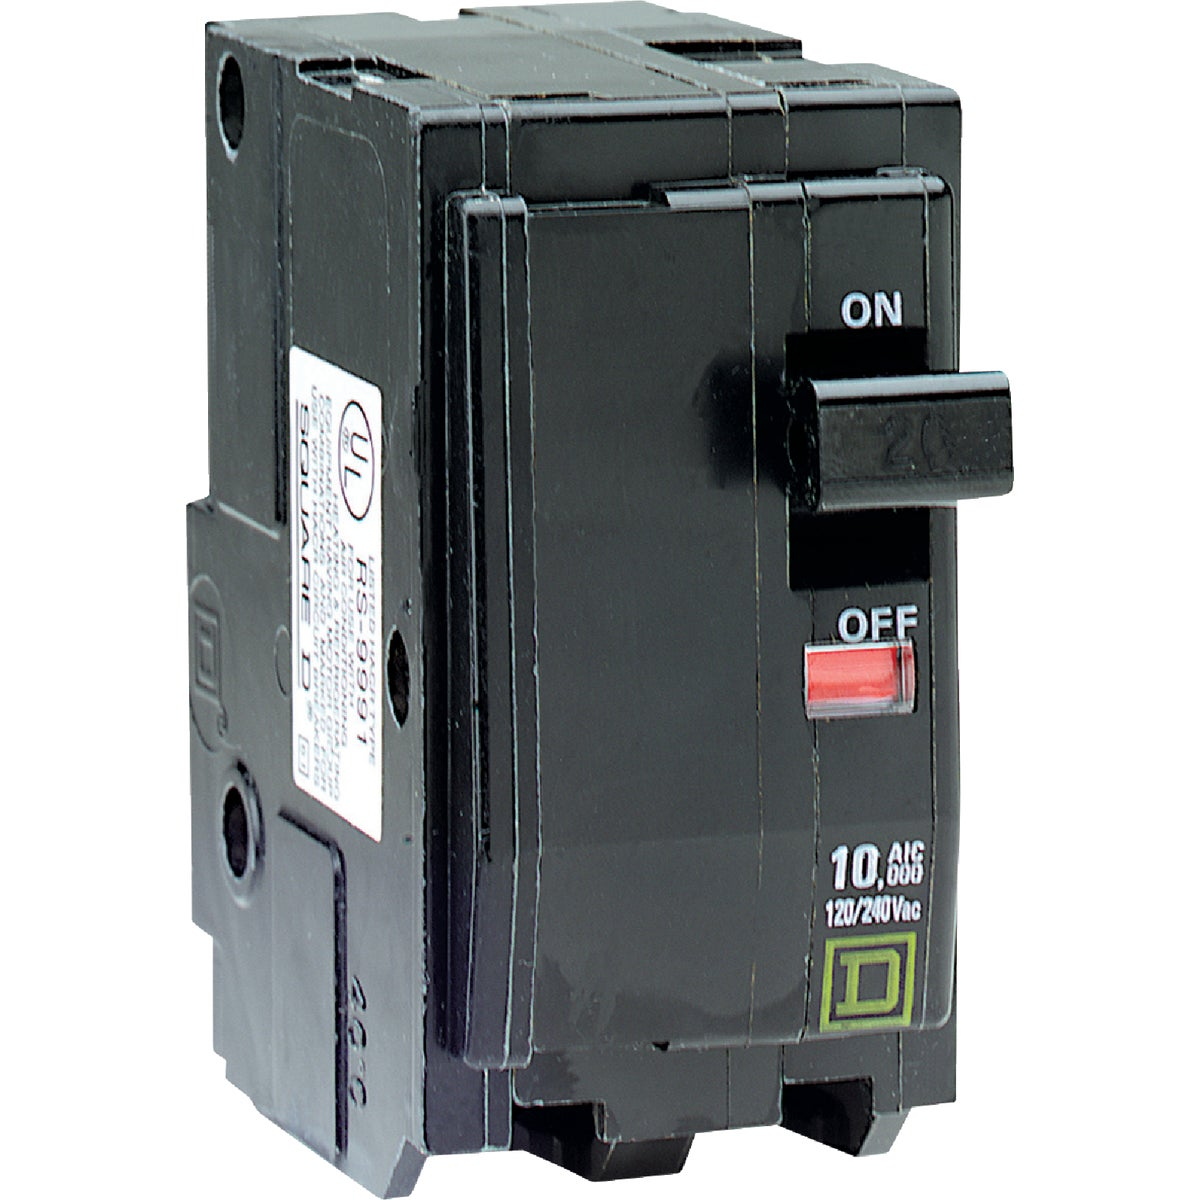 50A 2P CIRCUIT BREAKER - QO250CP by Square D Co